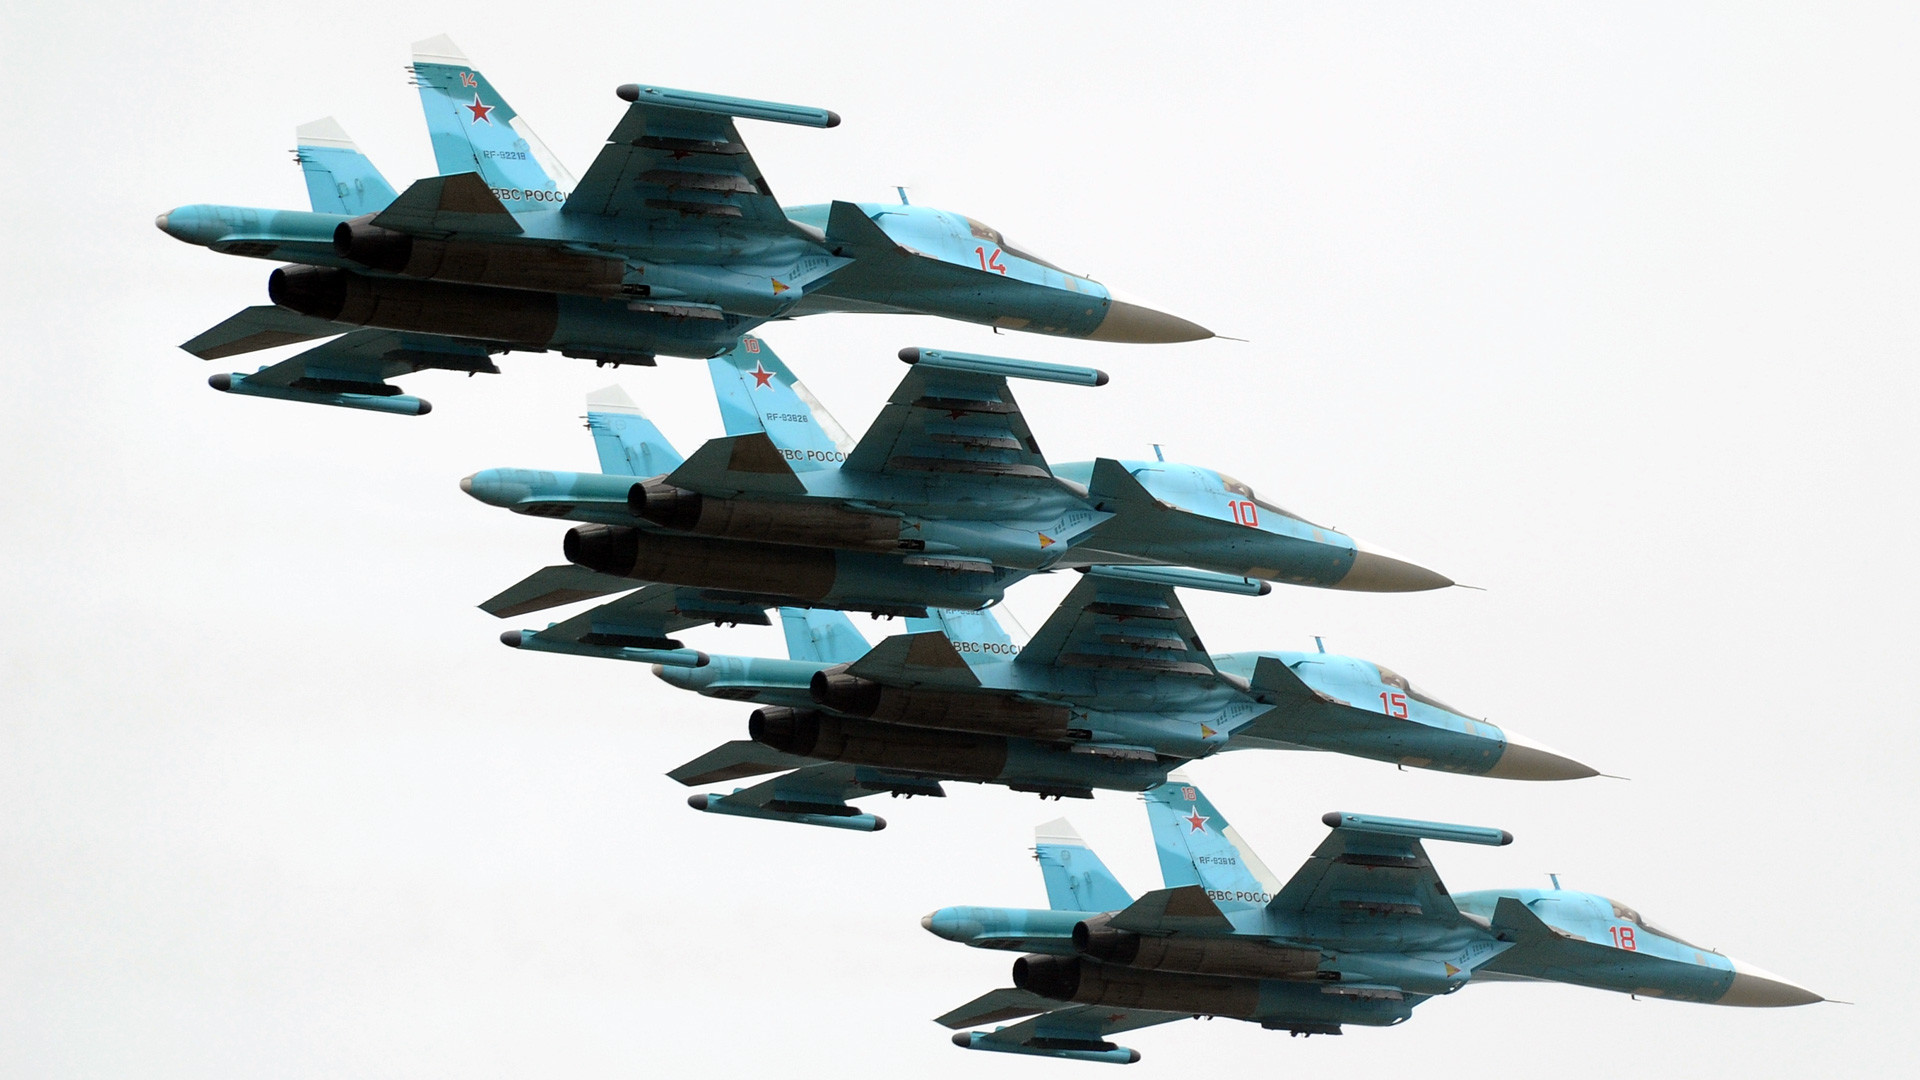 Su-34 bomber-fighters during the aviation-sports holiday in Rostov-on-Don devoted to the 75th anniversary of the formation of the 4th Air and Air Defence Forces Army.